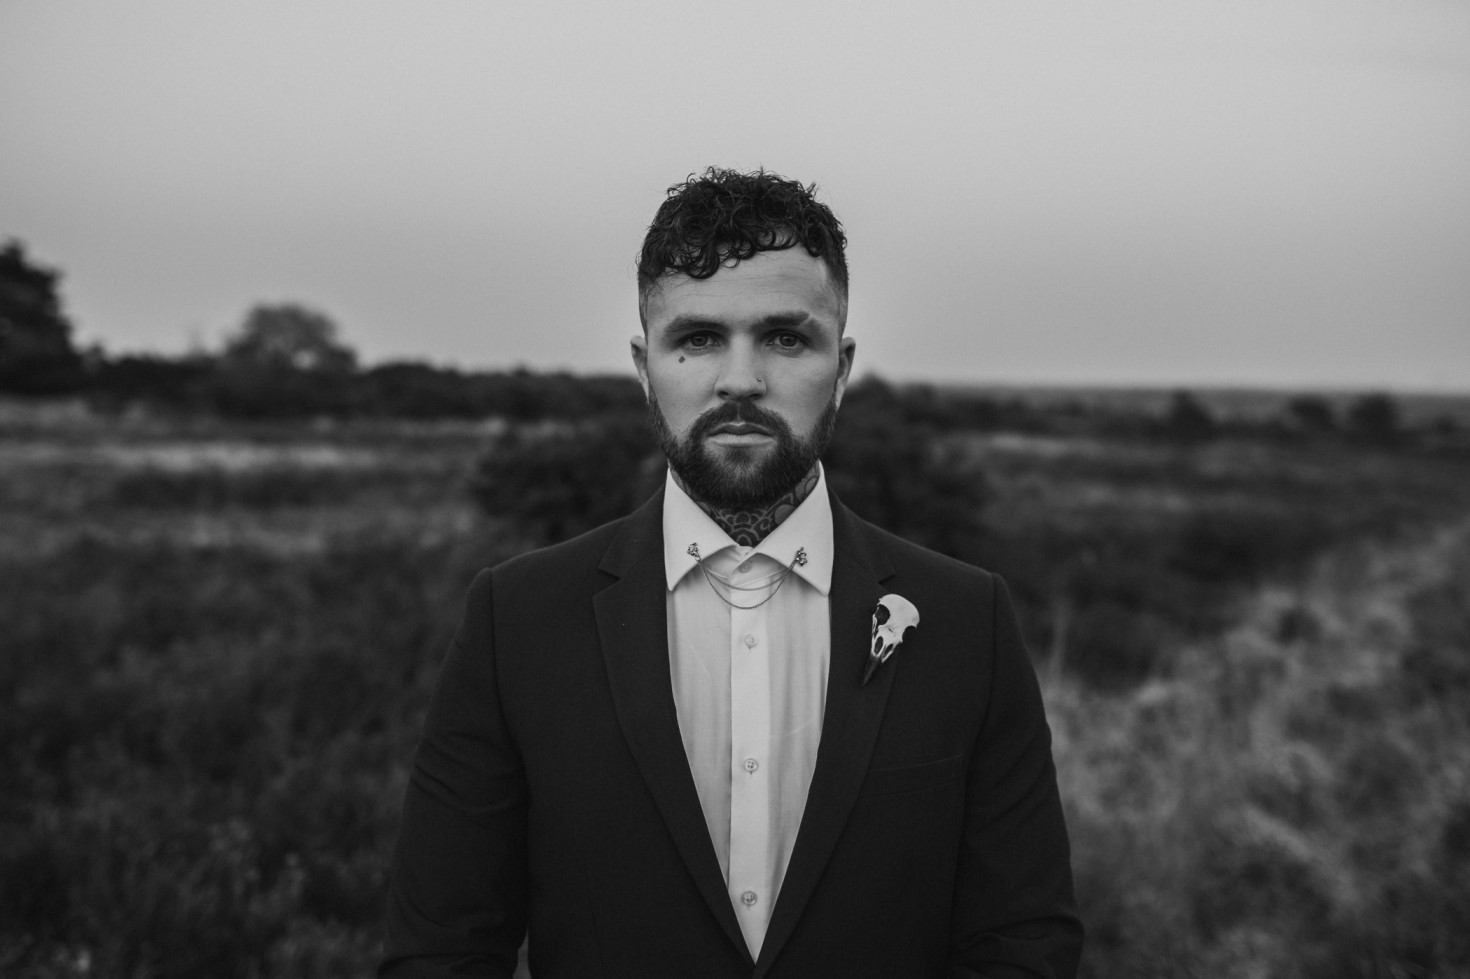 Finn And The Fox Photography-Moody Elopement Wedding- Alternative wedding - Alternative buttonhole - Groomswear inspiration